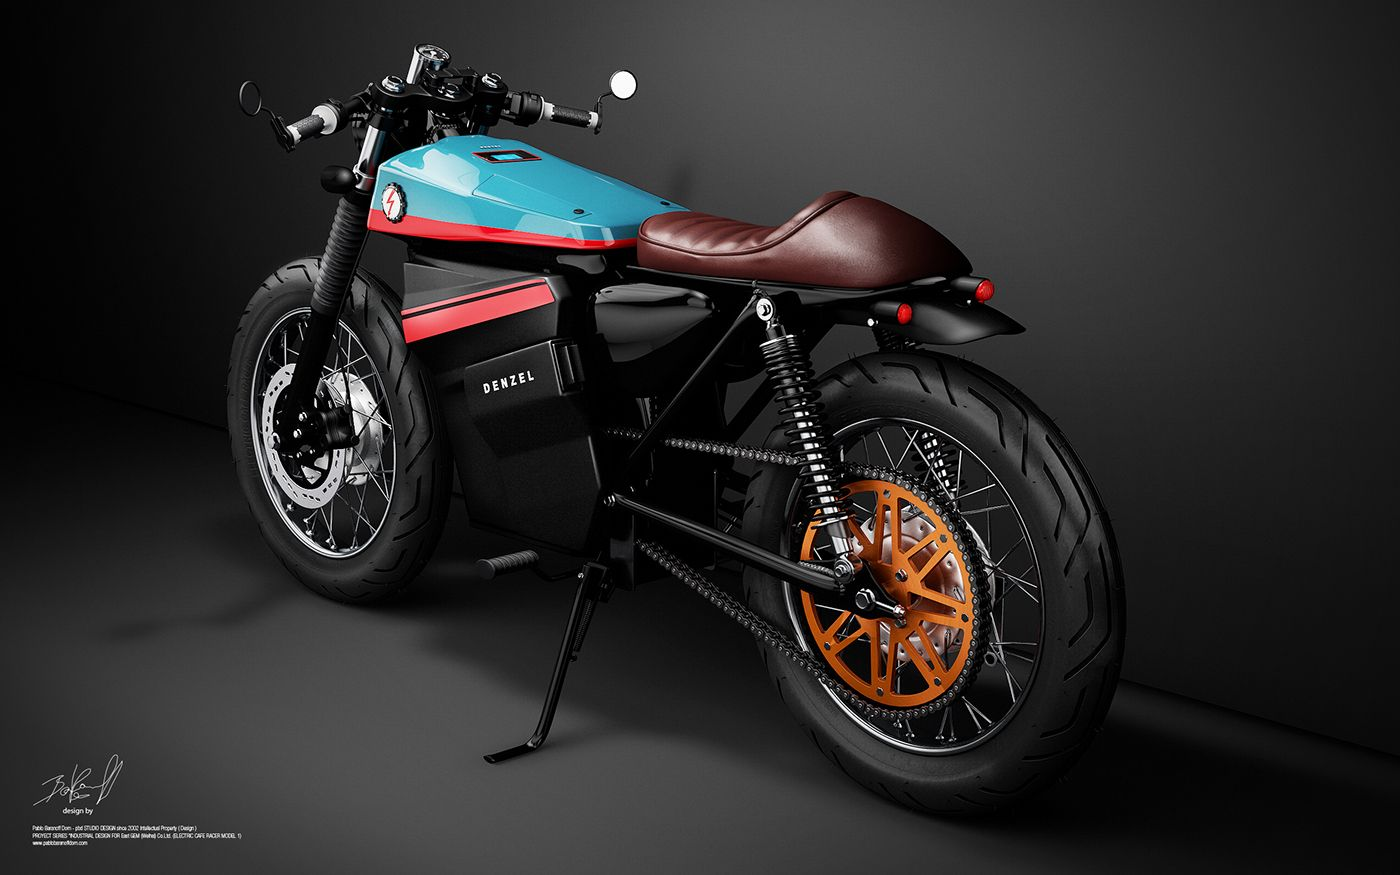 The project ECR (Electric Cafe Racer) parts from re-modelling a